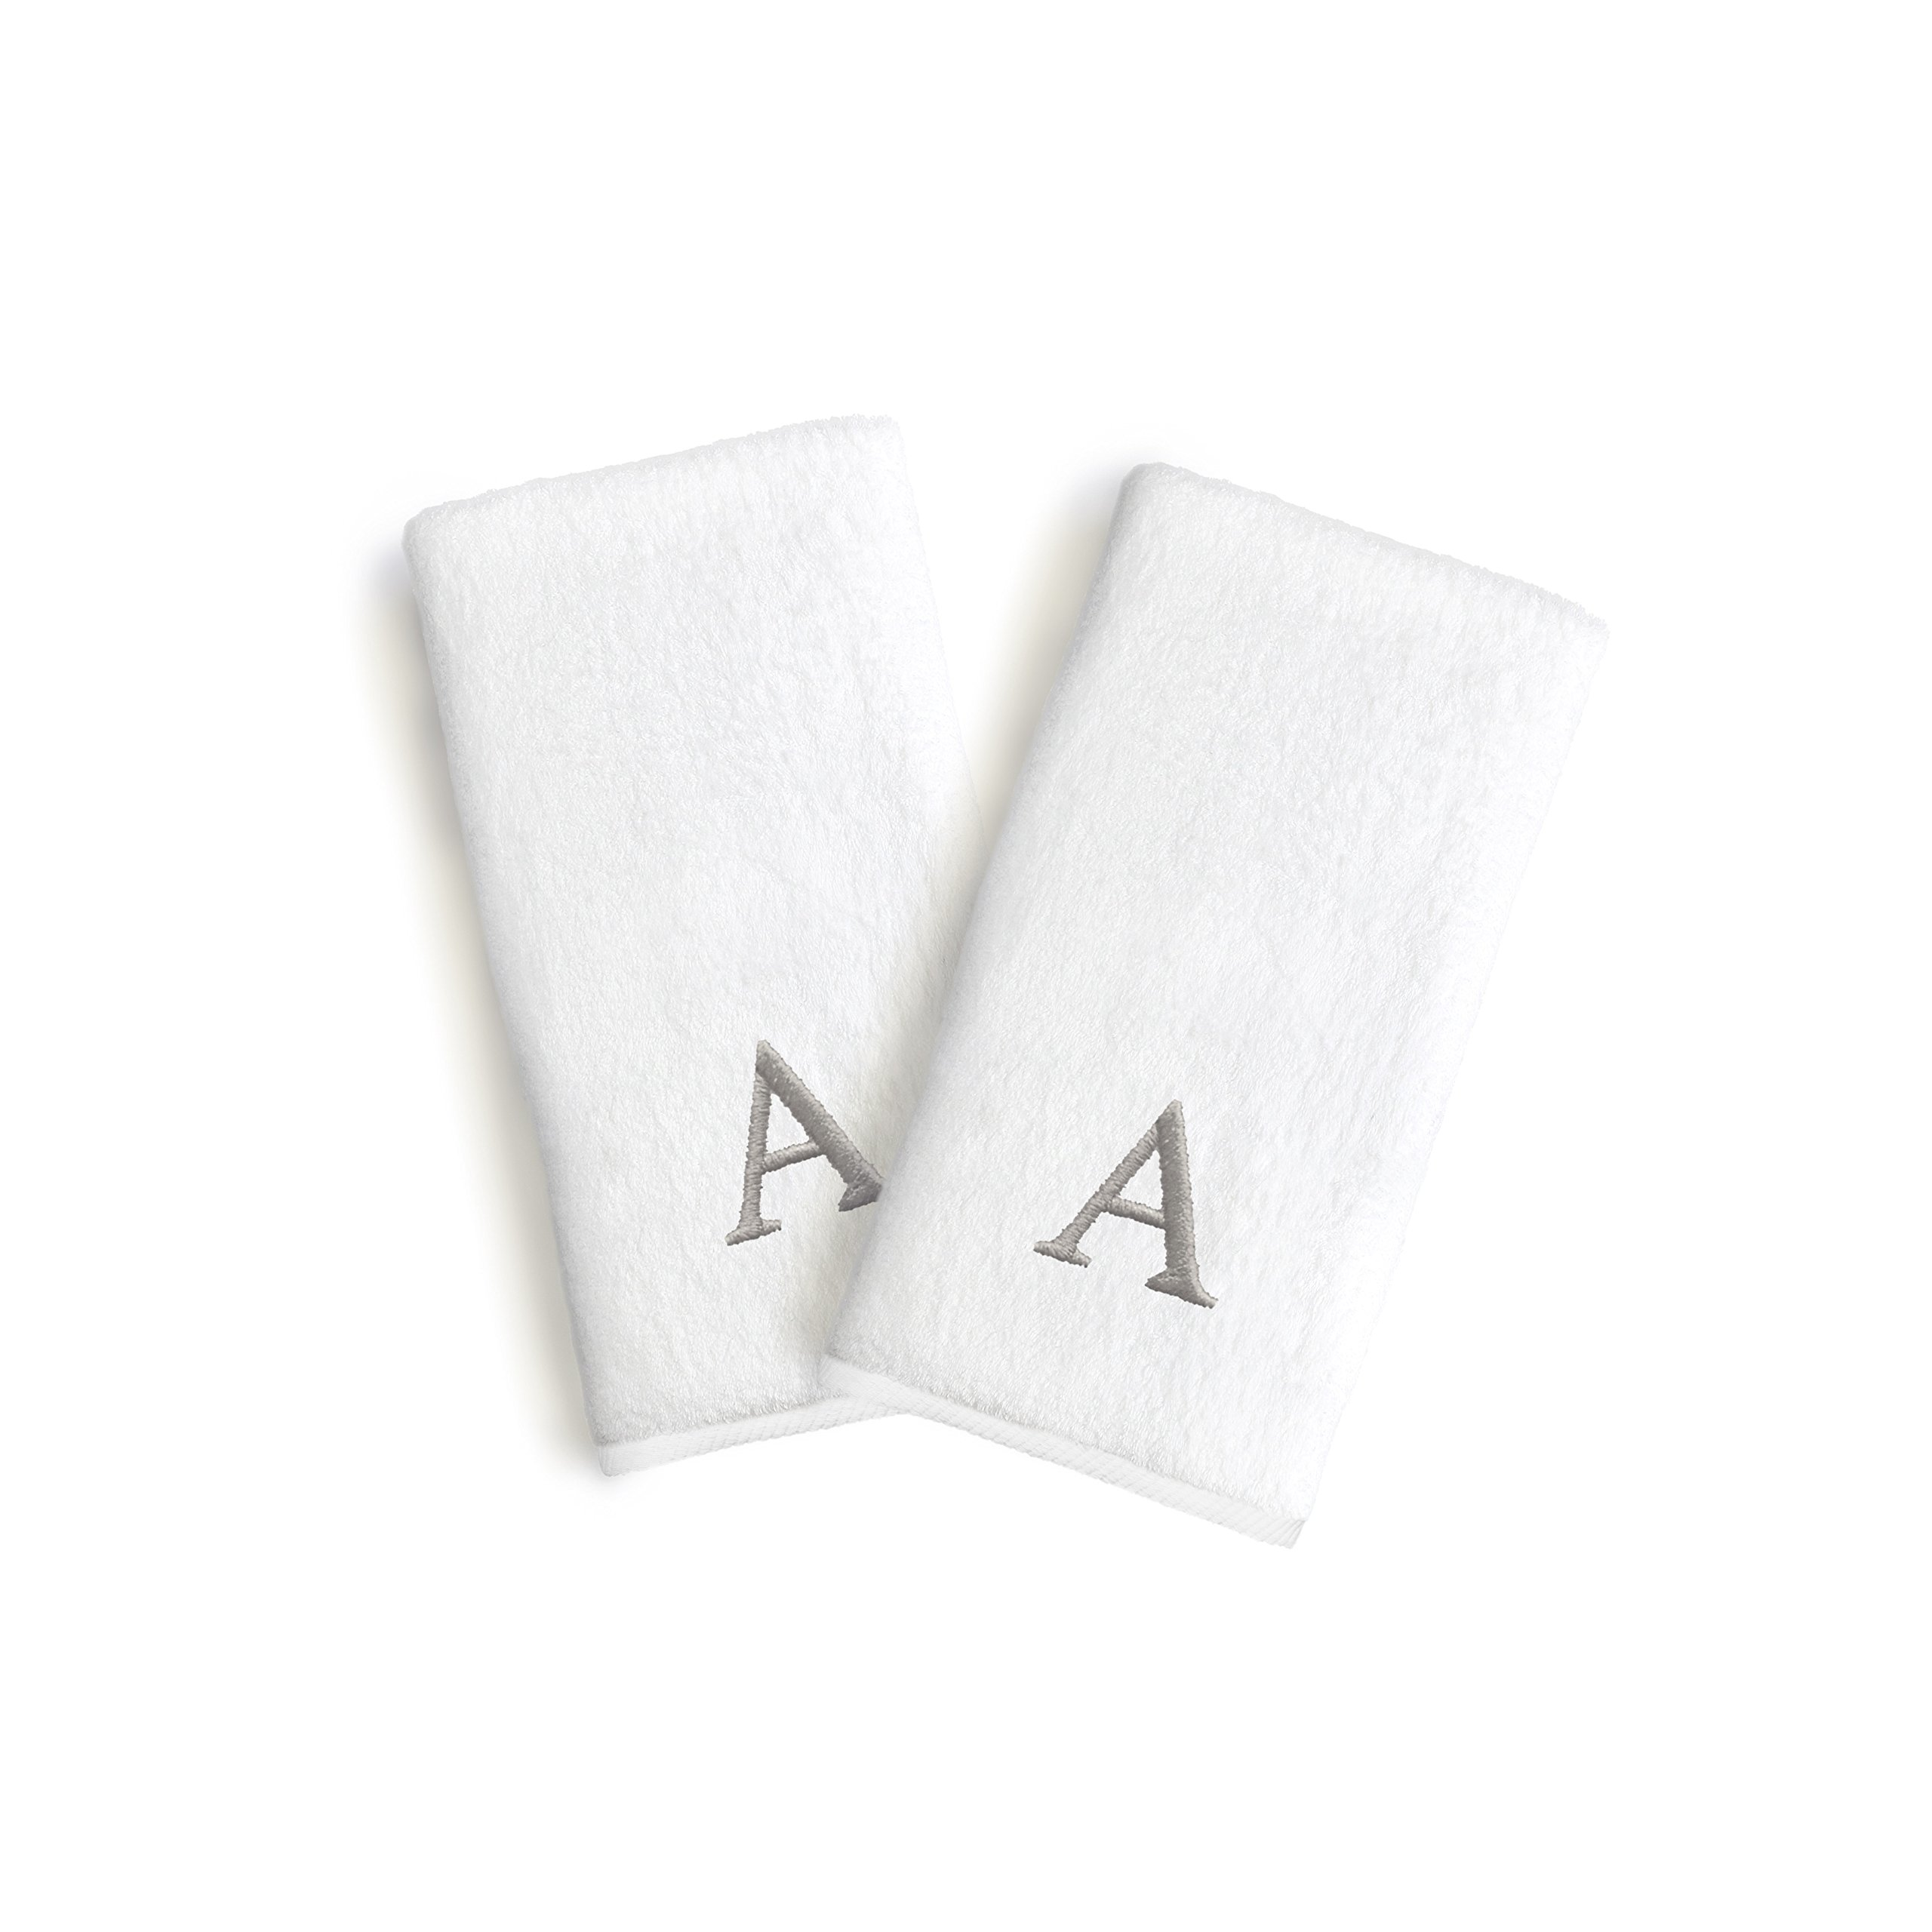 Authentic Hotel and Spa 2-piece White Turkish Cotton Hand Towels with Grey Block Monogrammed Initial White/J Casual